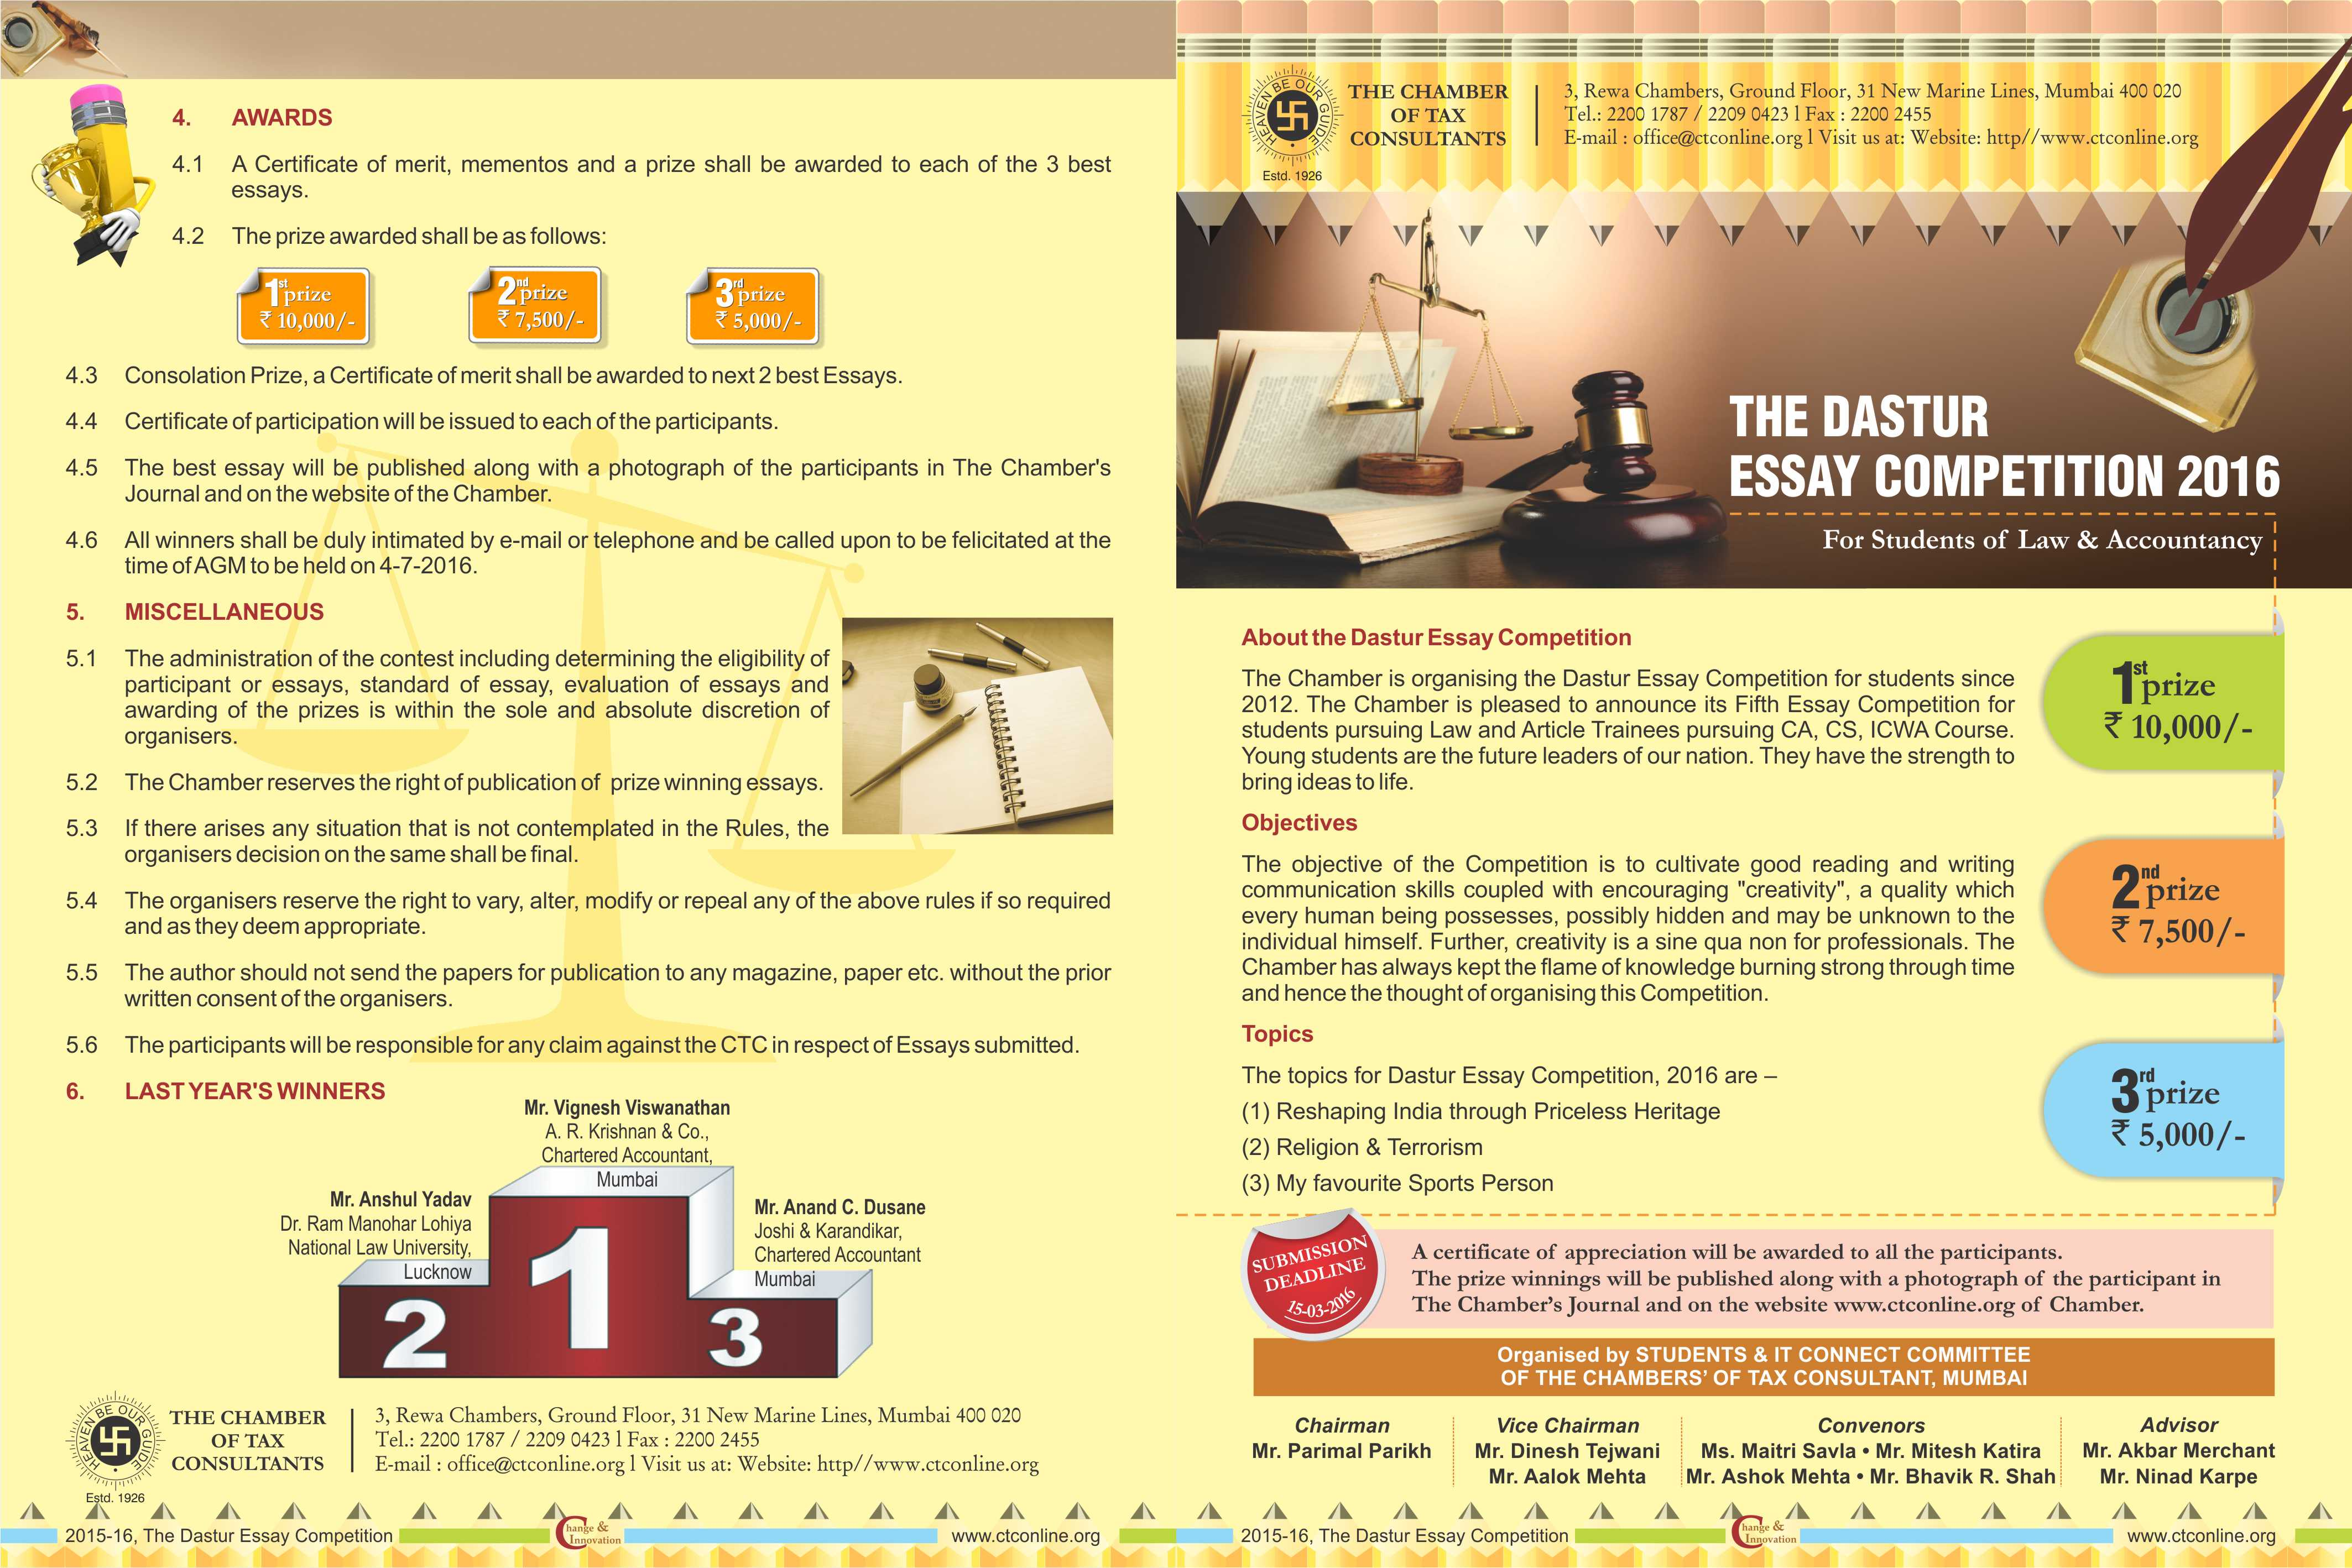 the chamber of tax consultants 5th dastur essay competition 2016 brochure